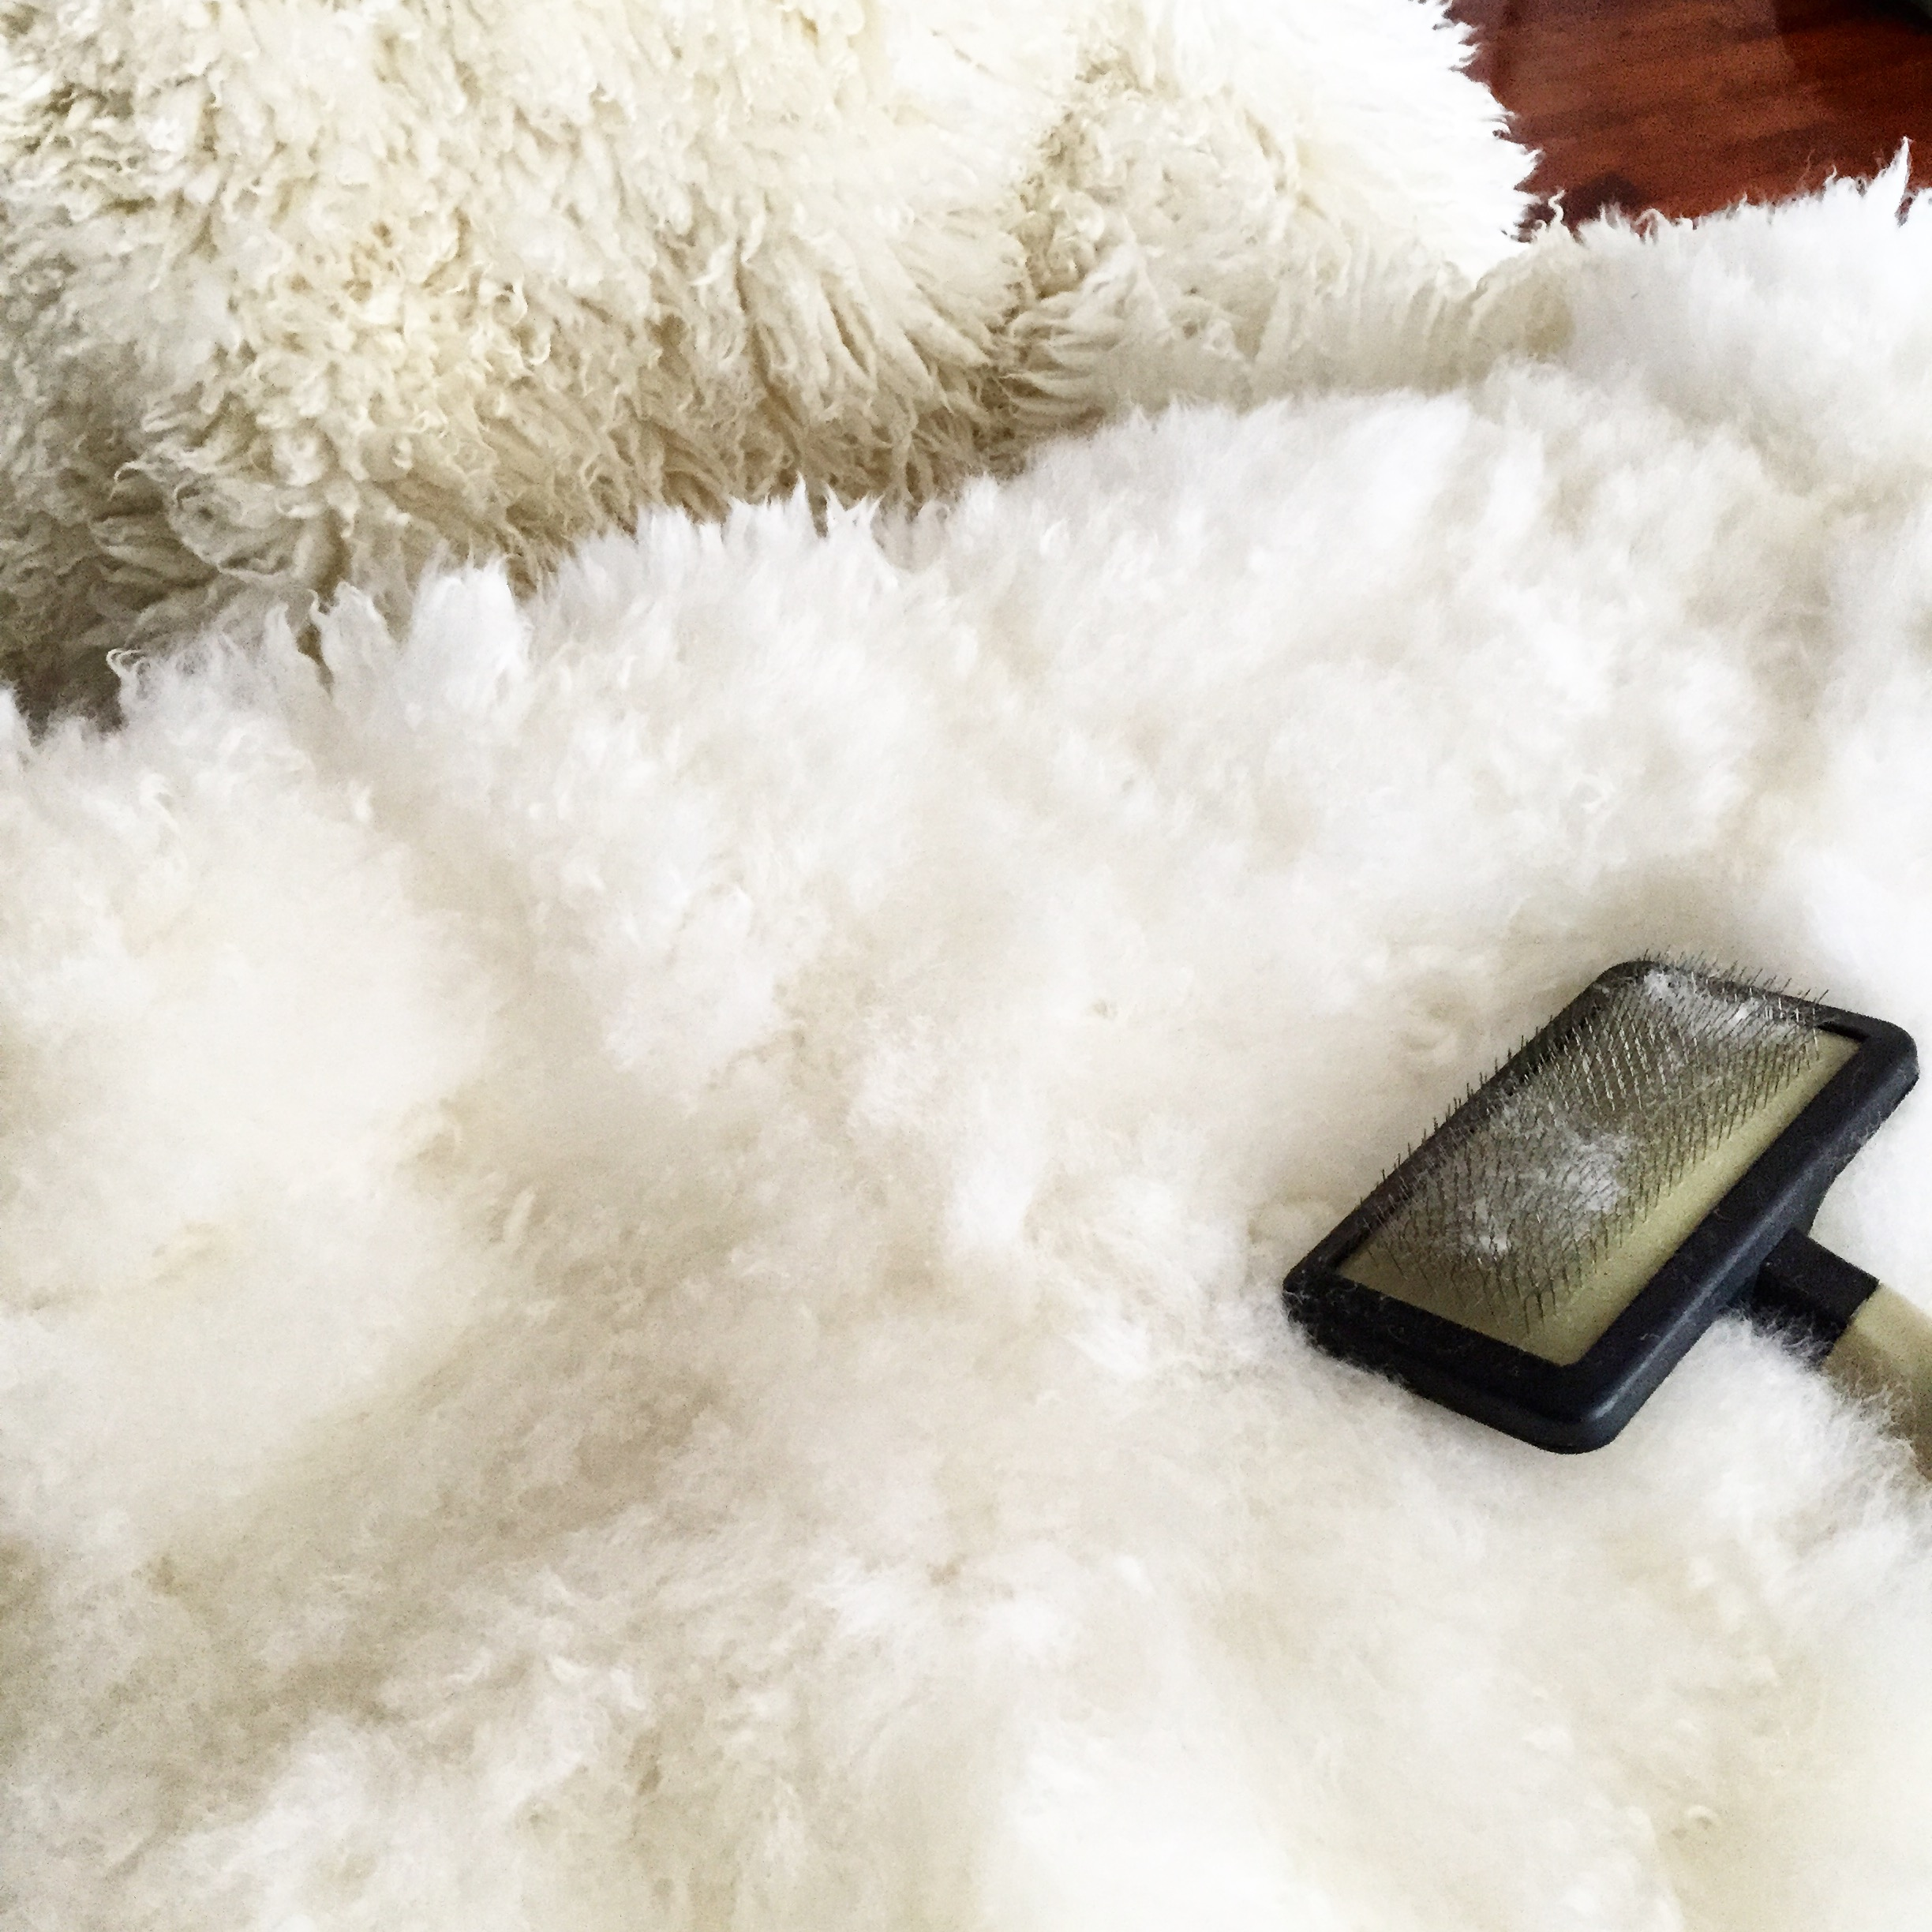 Sheepskin Rug Dry Cleaning: Expert Advice - Freshcleaning